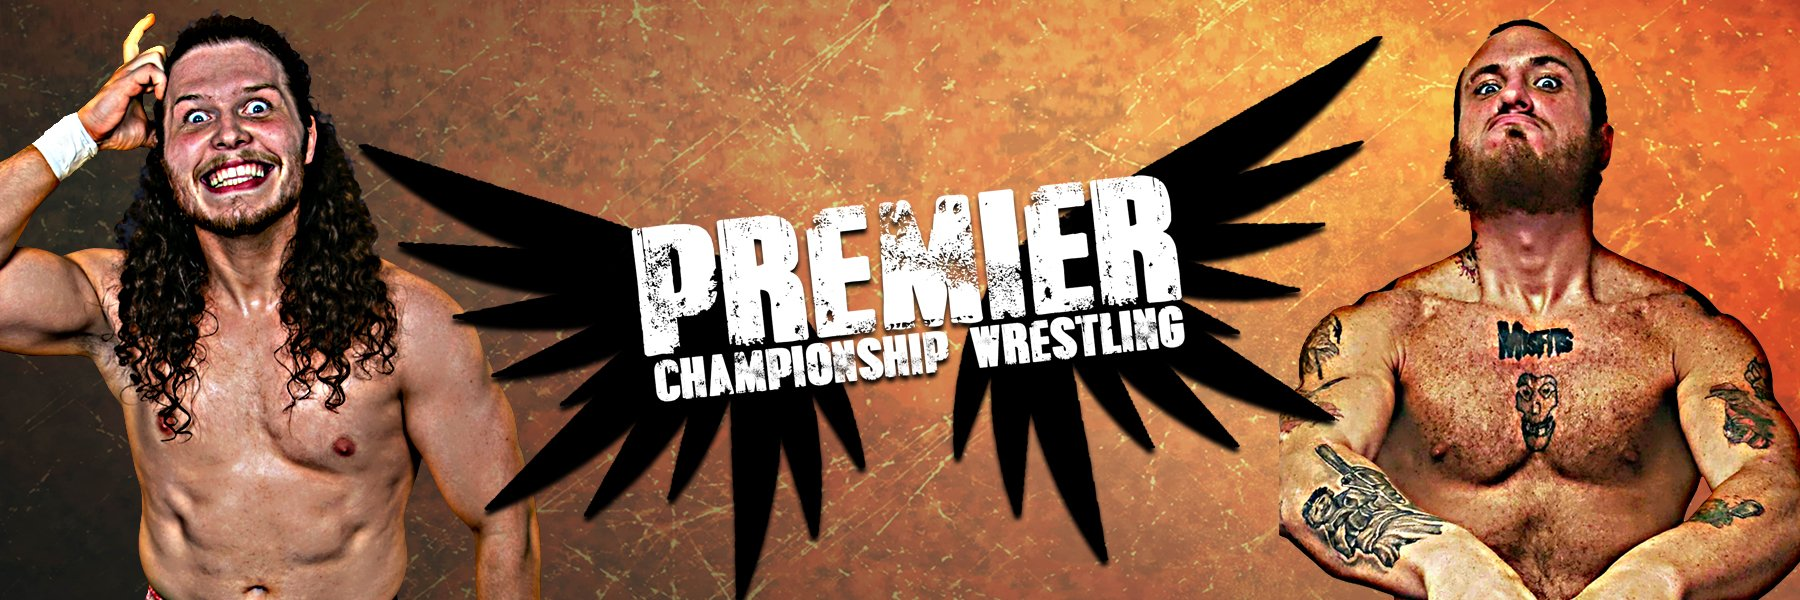 Premier Championship Wrestling - See The Northeast & Midwest's Rising Stars